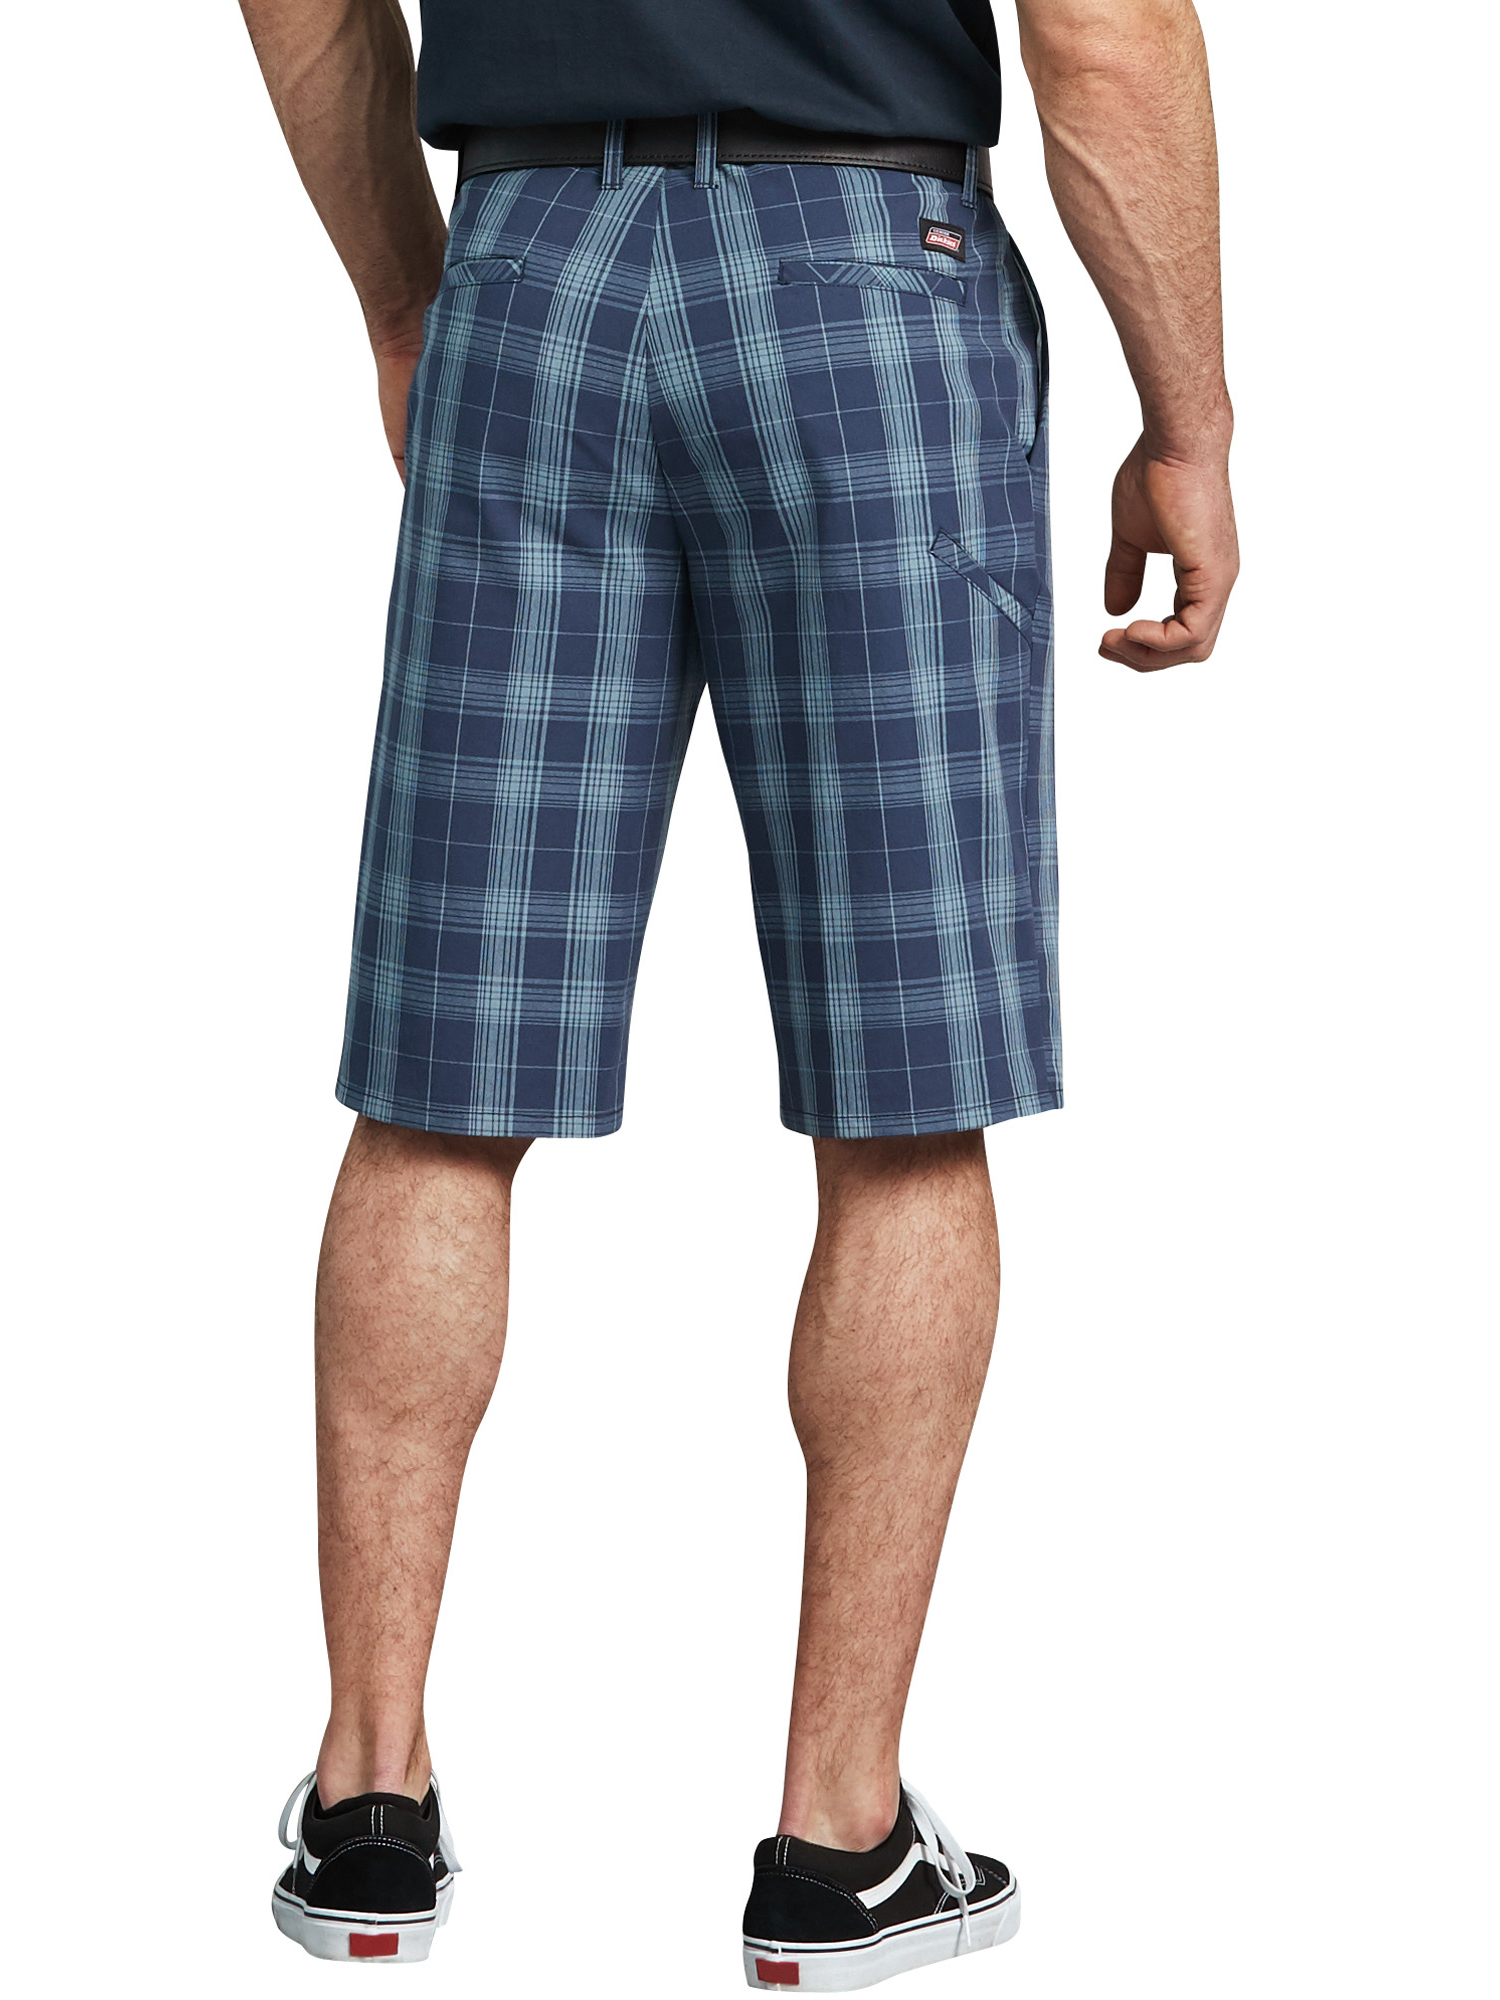 Dickies NEW Men/'s Classic Fit Flex Fabric Comfort Plaid Printed Shorts